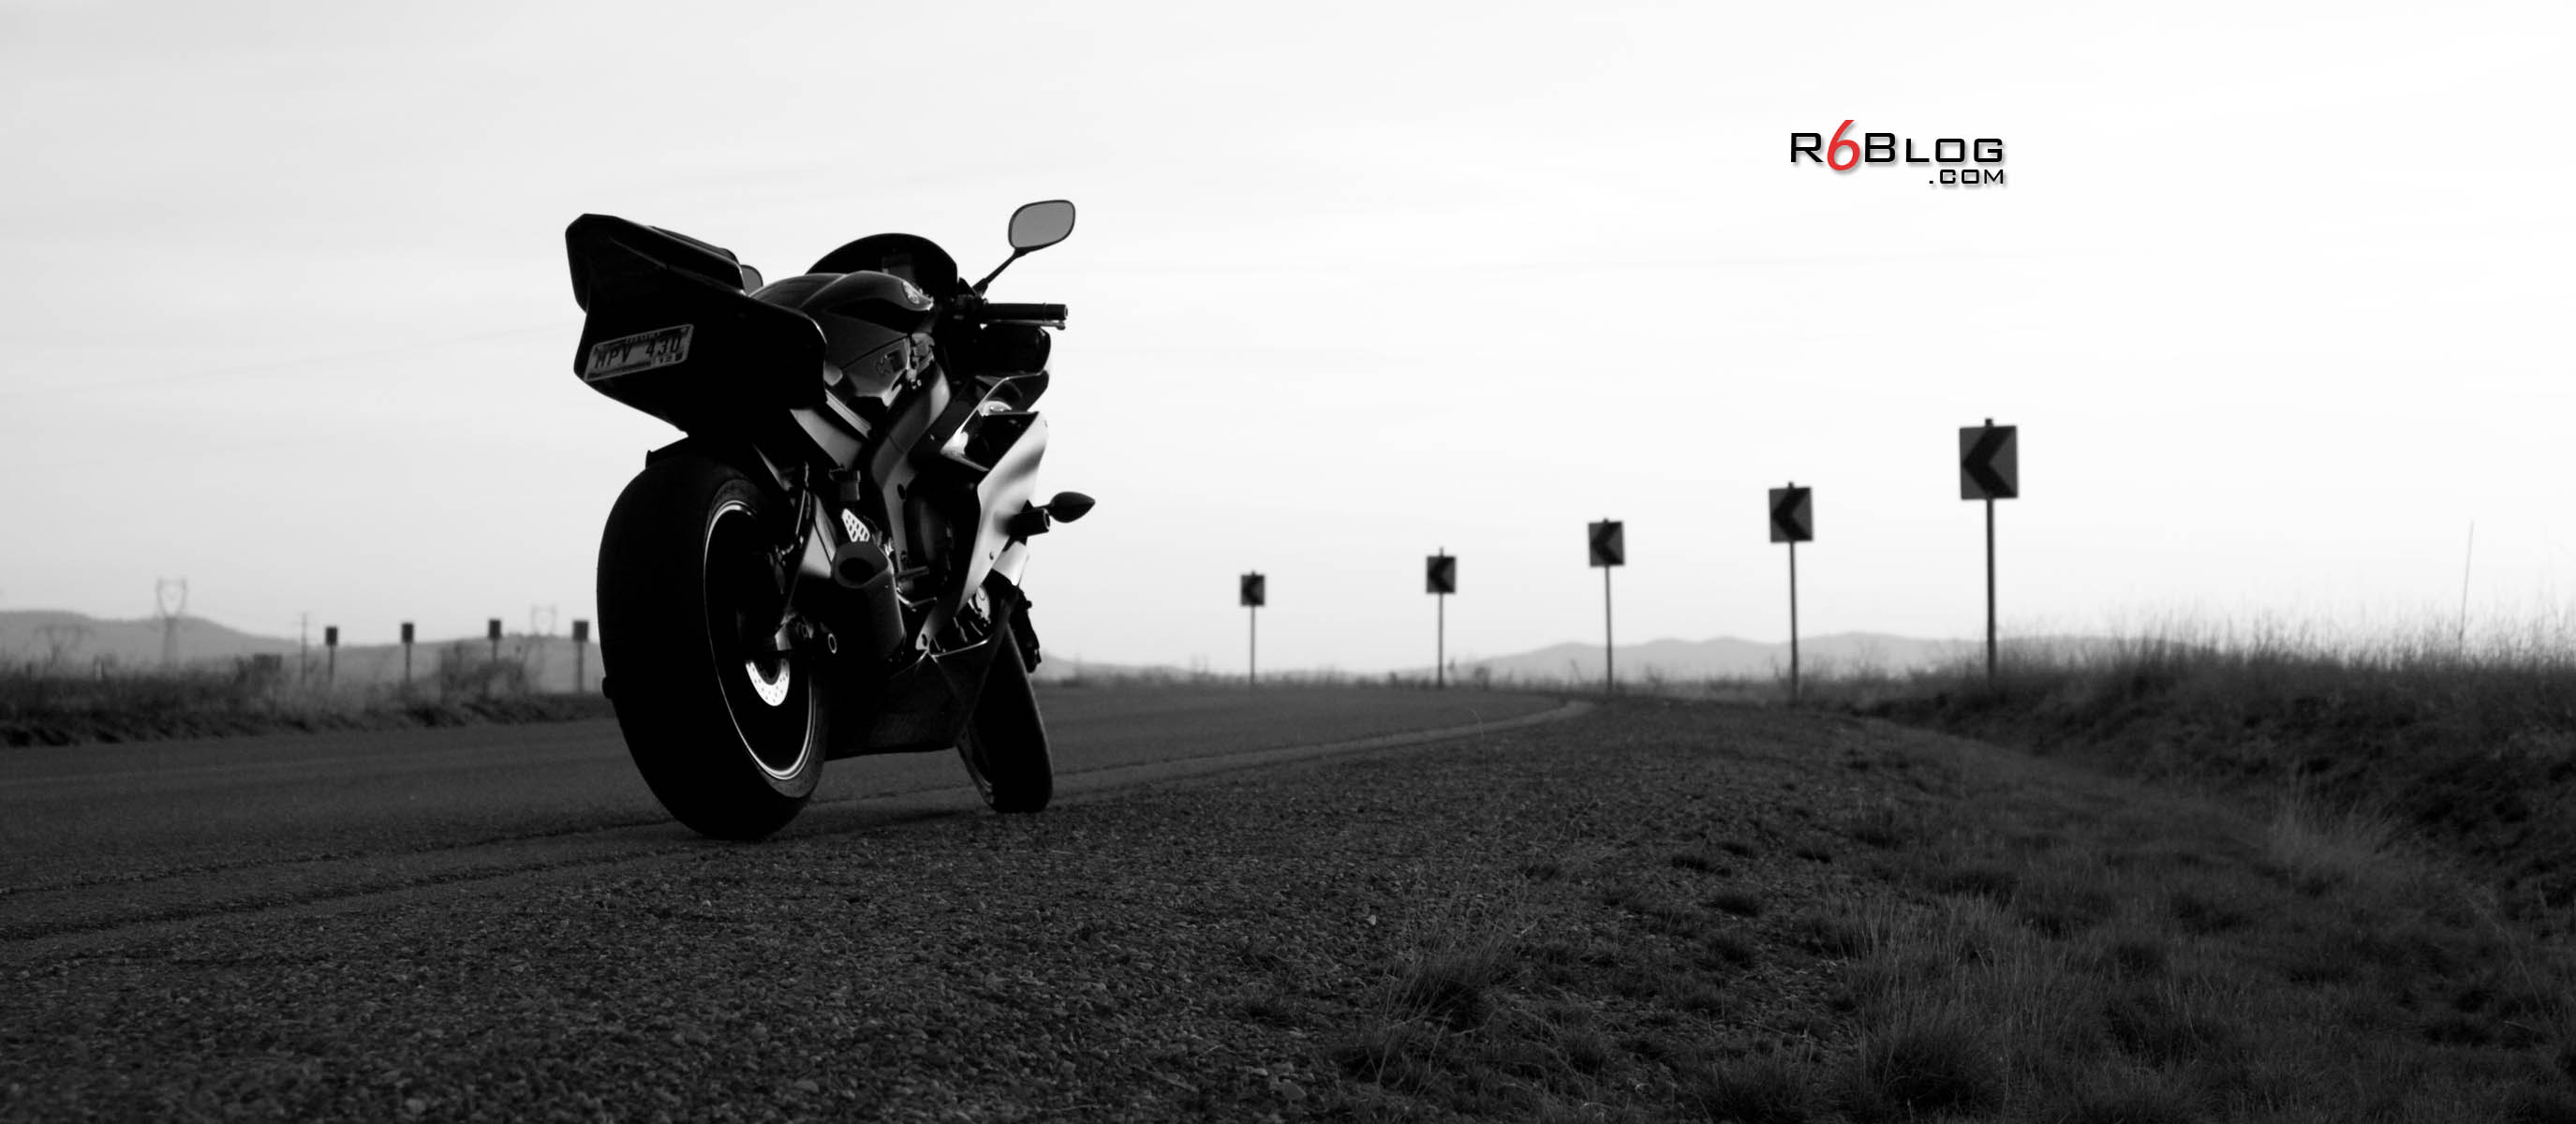 New Yamaha R6 Wallpapers From R6Blog!